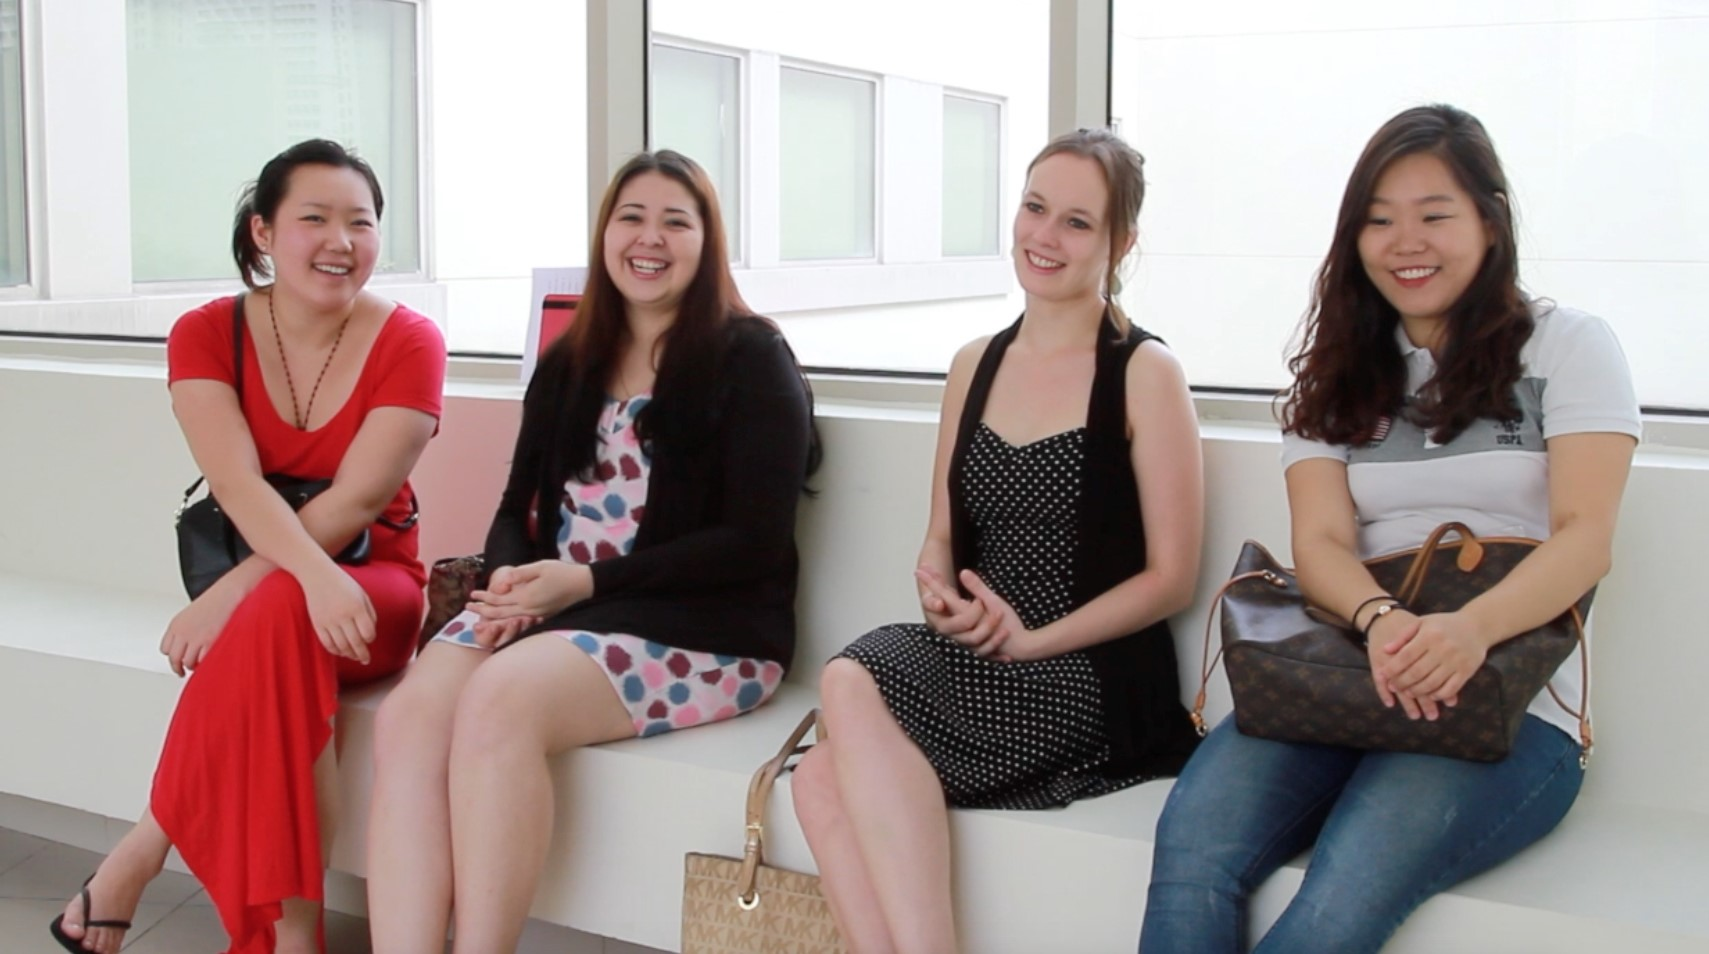 Above: Monique Lapins with her fellow friends from the Class of 2014. From left: Wang Yangzi (Viola), Adelya Nartadjieva (Violin), Monique Lapins (Violin), Lee Minjin (Cello)